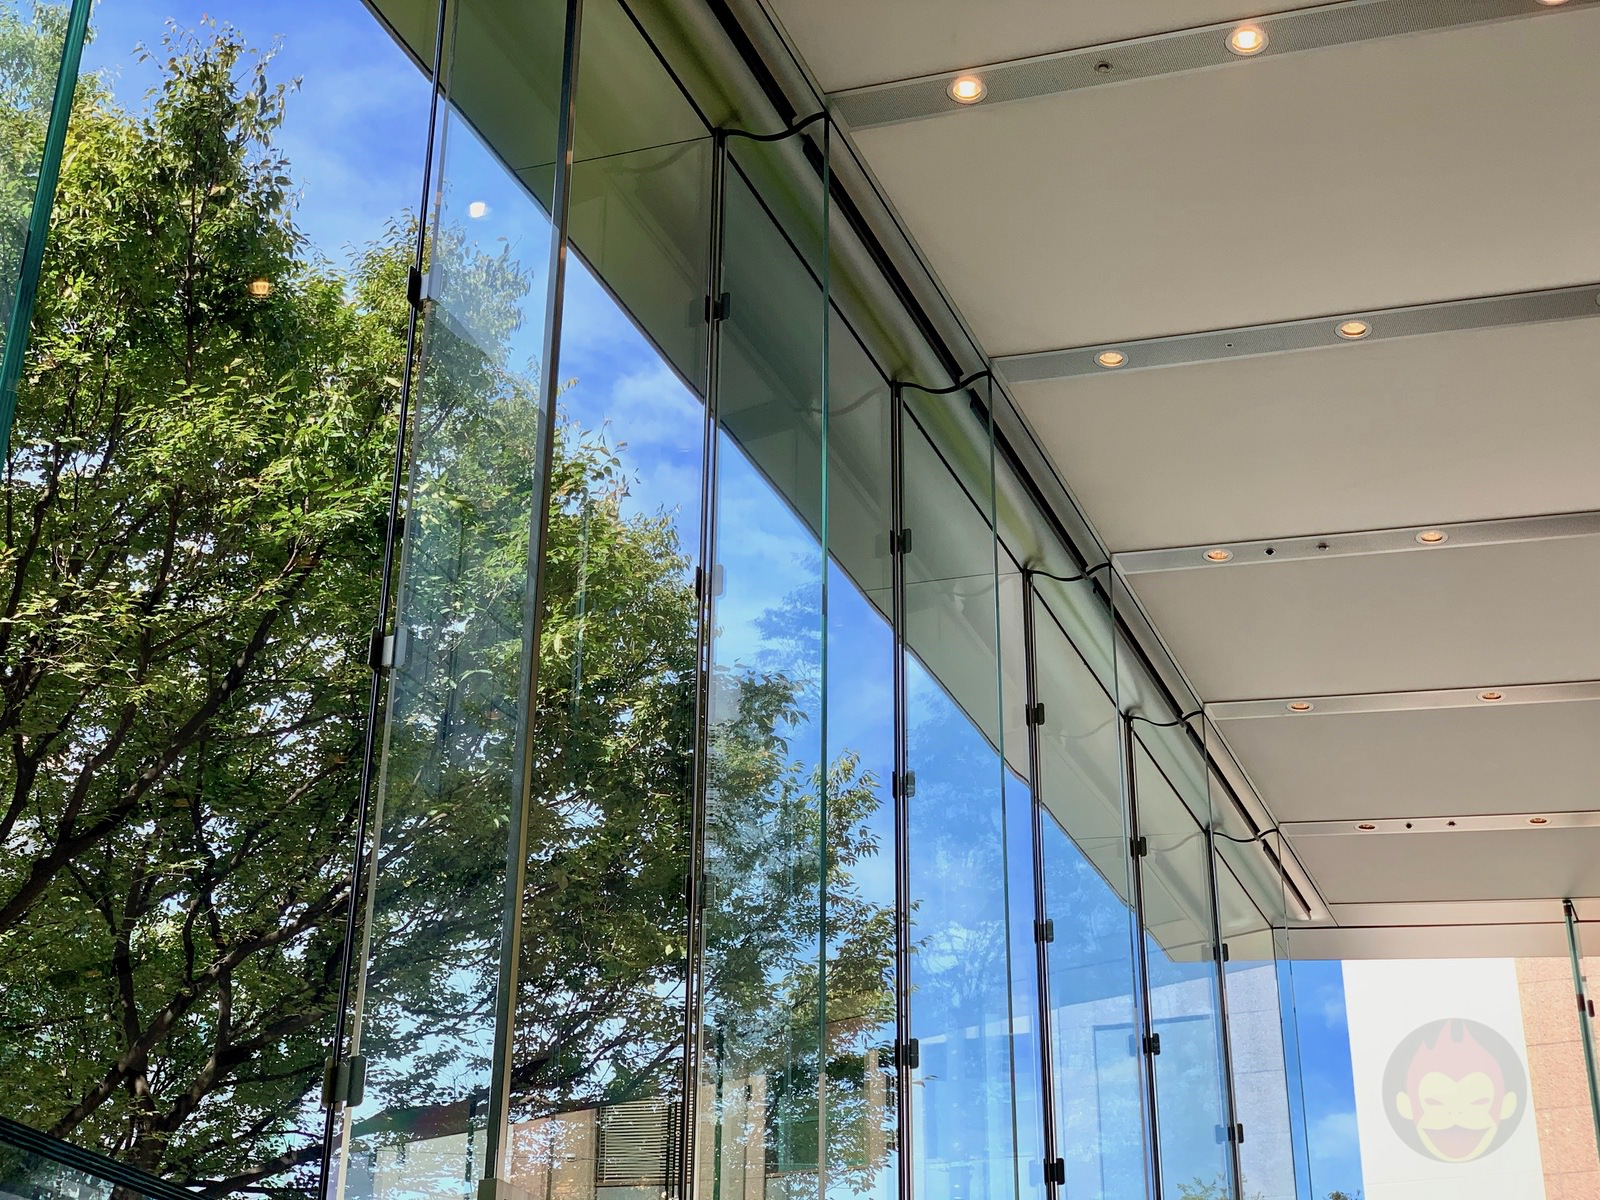 Apple Omotesando Video Wall Renewall 16